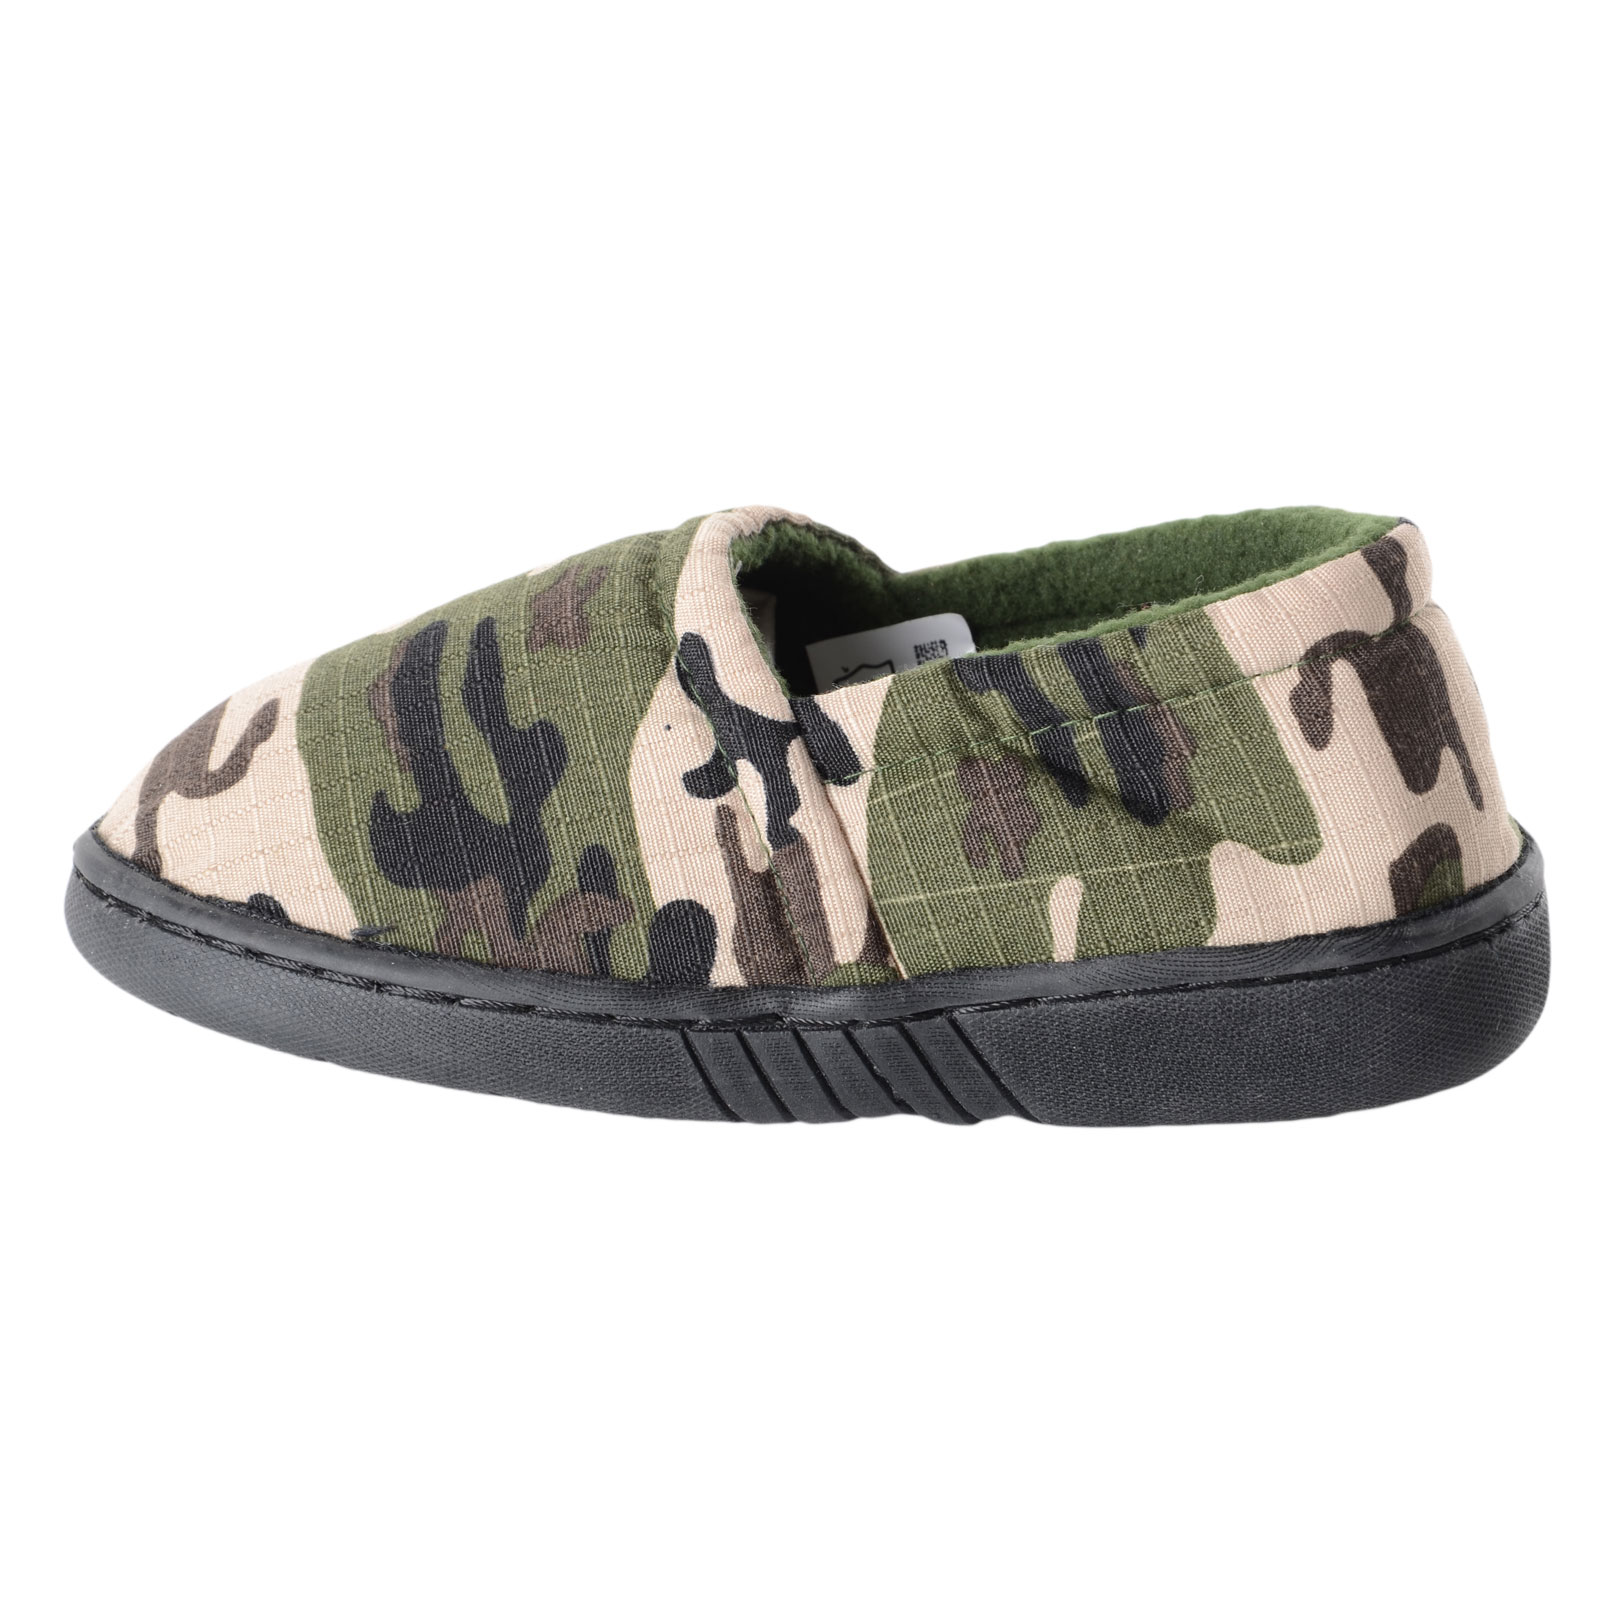 Find great deals on Boys Kids Slippers at Kohl's today! Sponsored Links Outside companies pay to advertise via these links when specific phrases and words are searched.